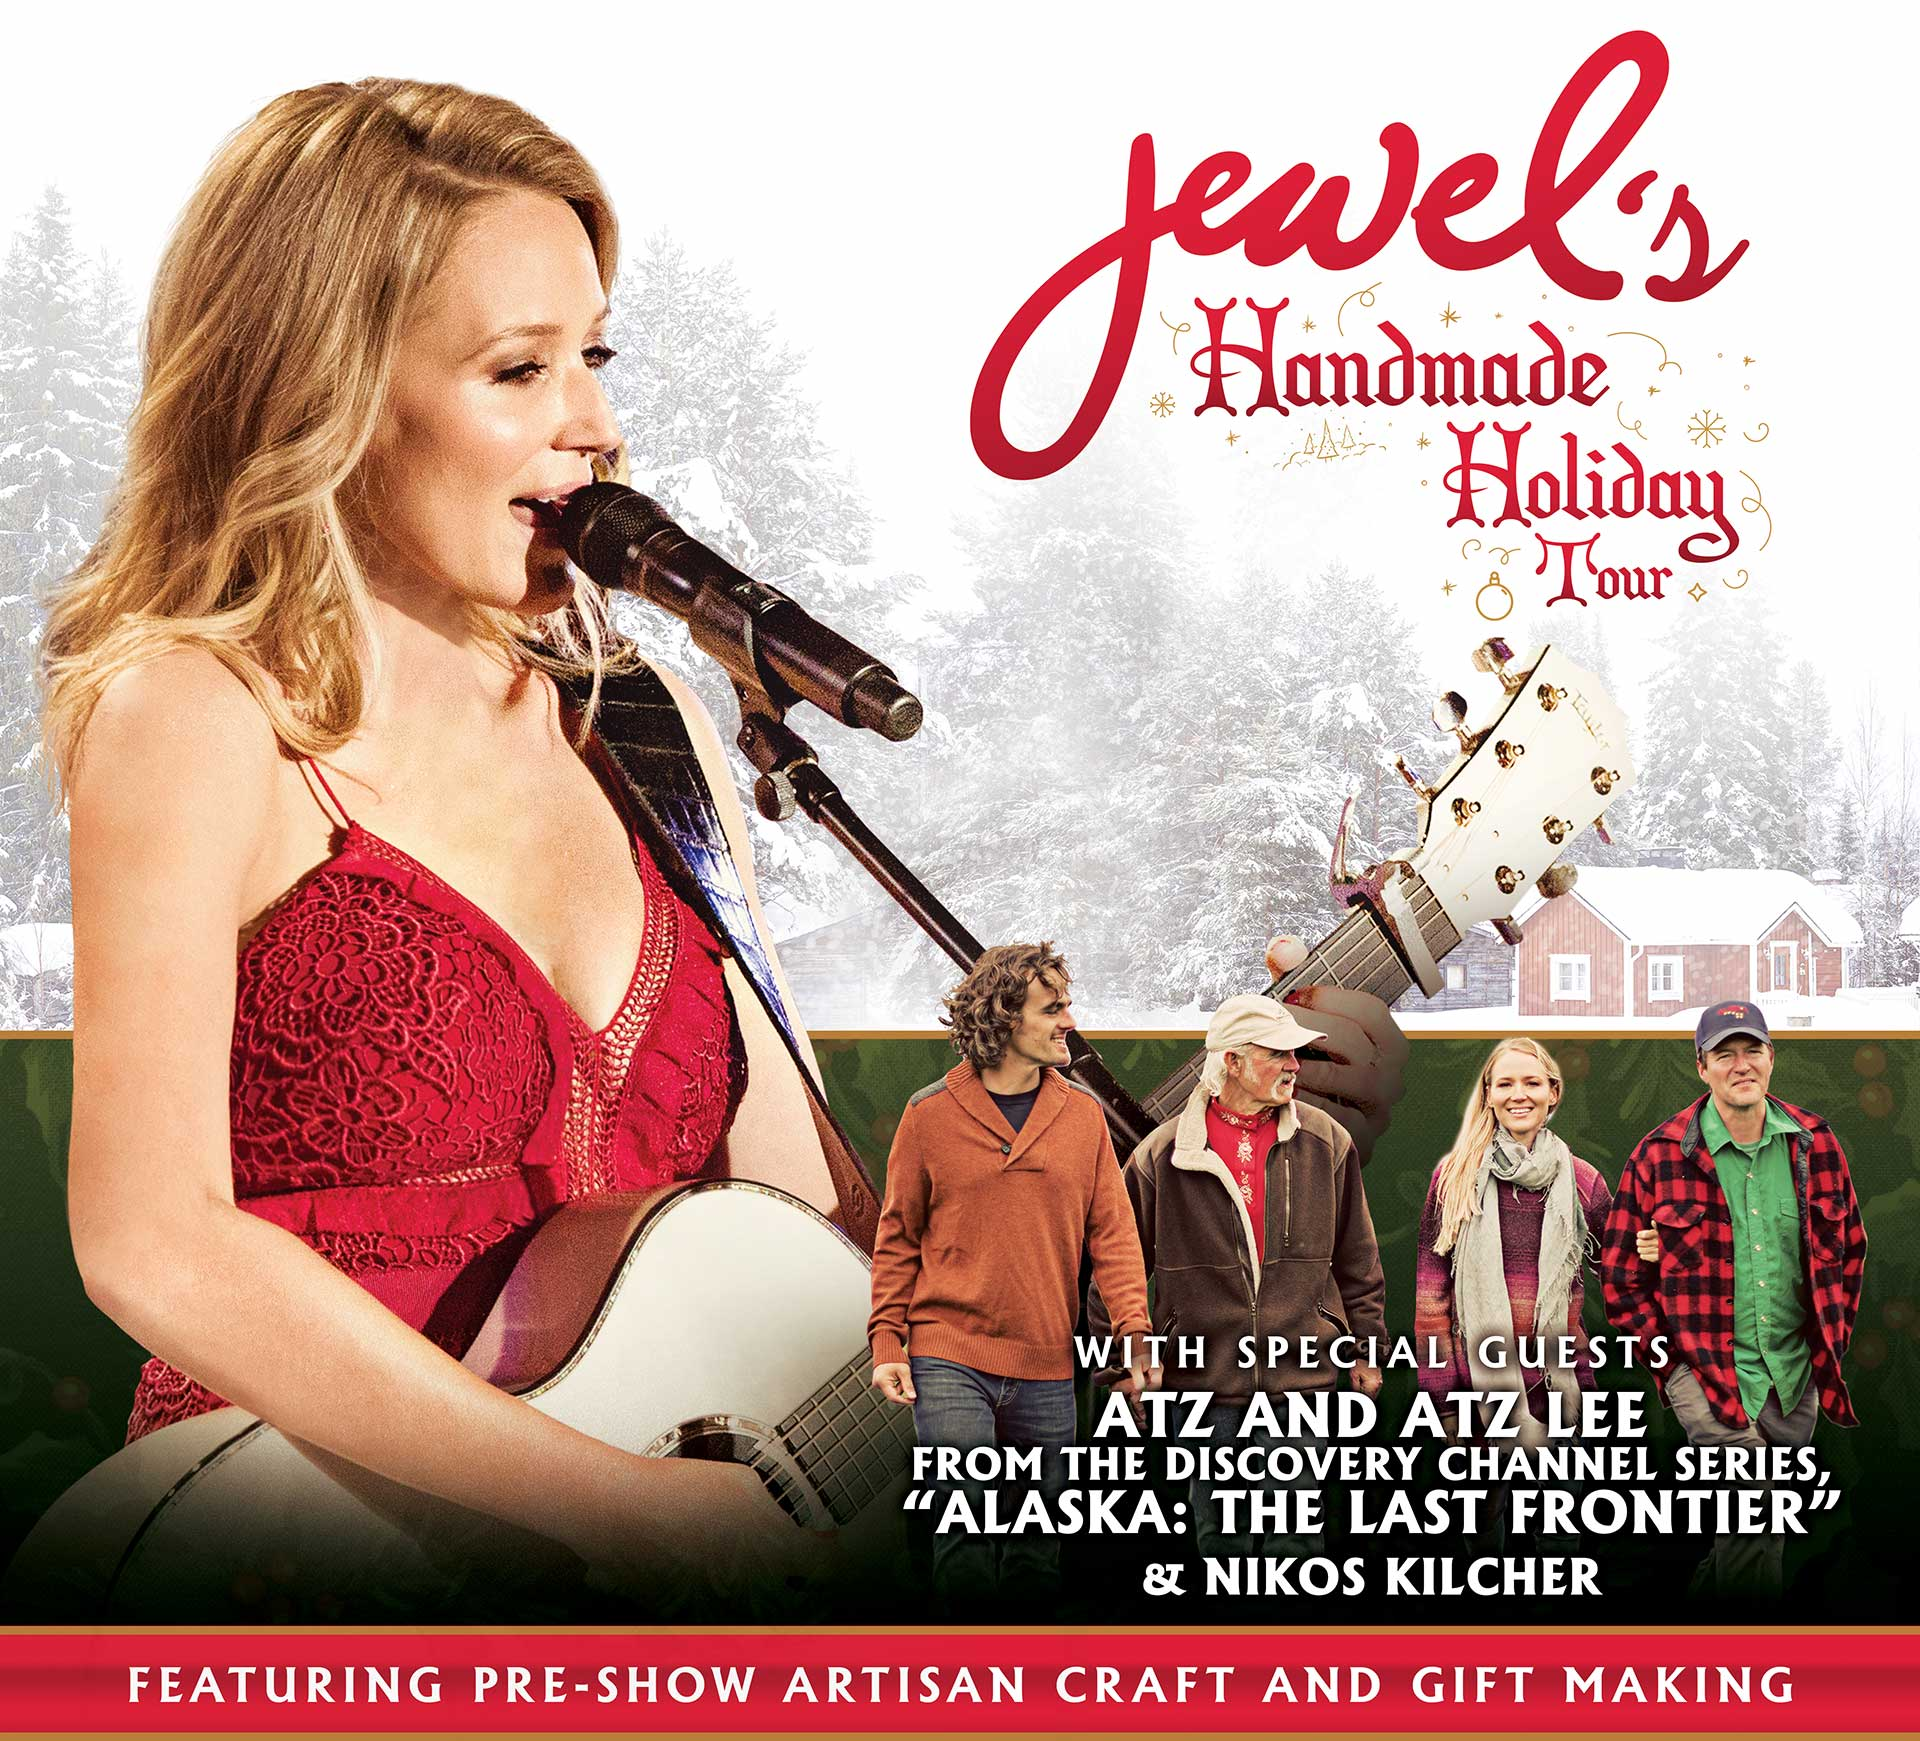 Jewel's 2018 Handmade Holiday Tour